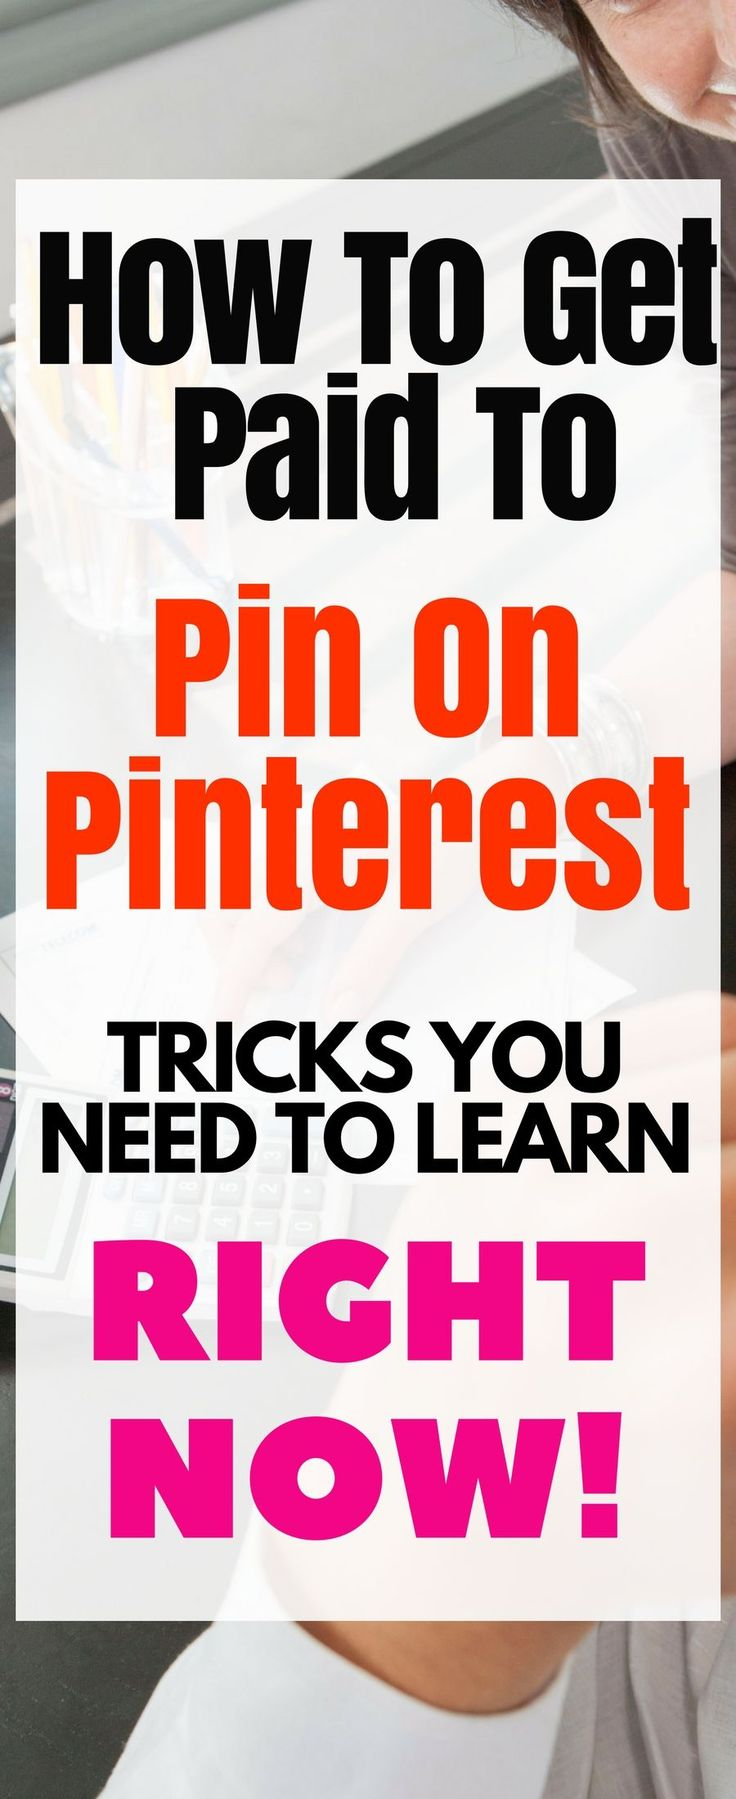 How to make money on Pinterest| Real ways to make money online using Pinterest, affialite marketing, dislay ads, etsy, shopify, amazon associates and so much more Learn of real ways to make money from home using Pinterest